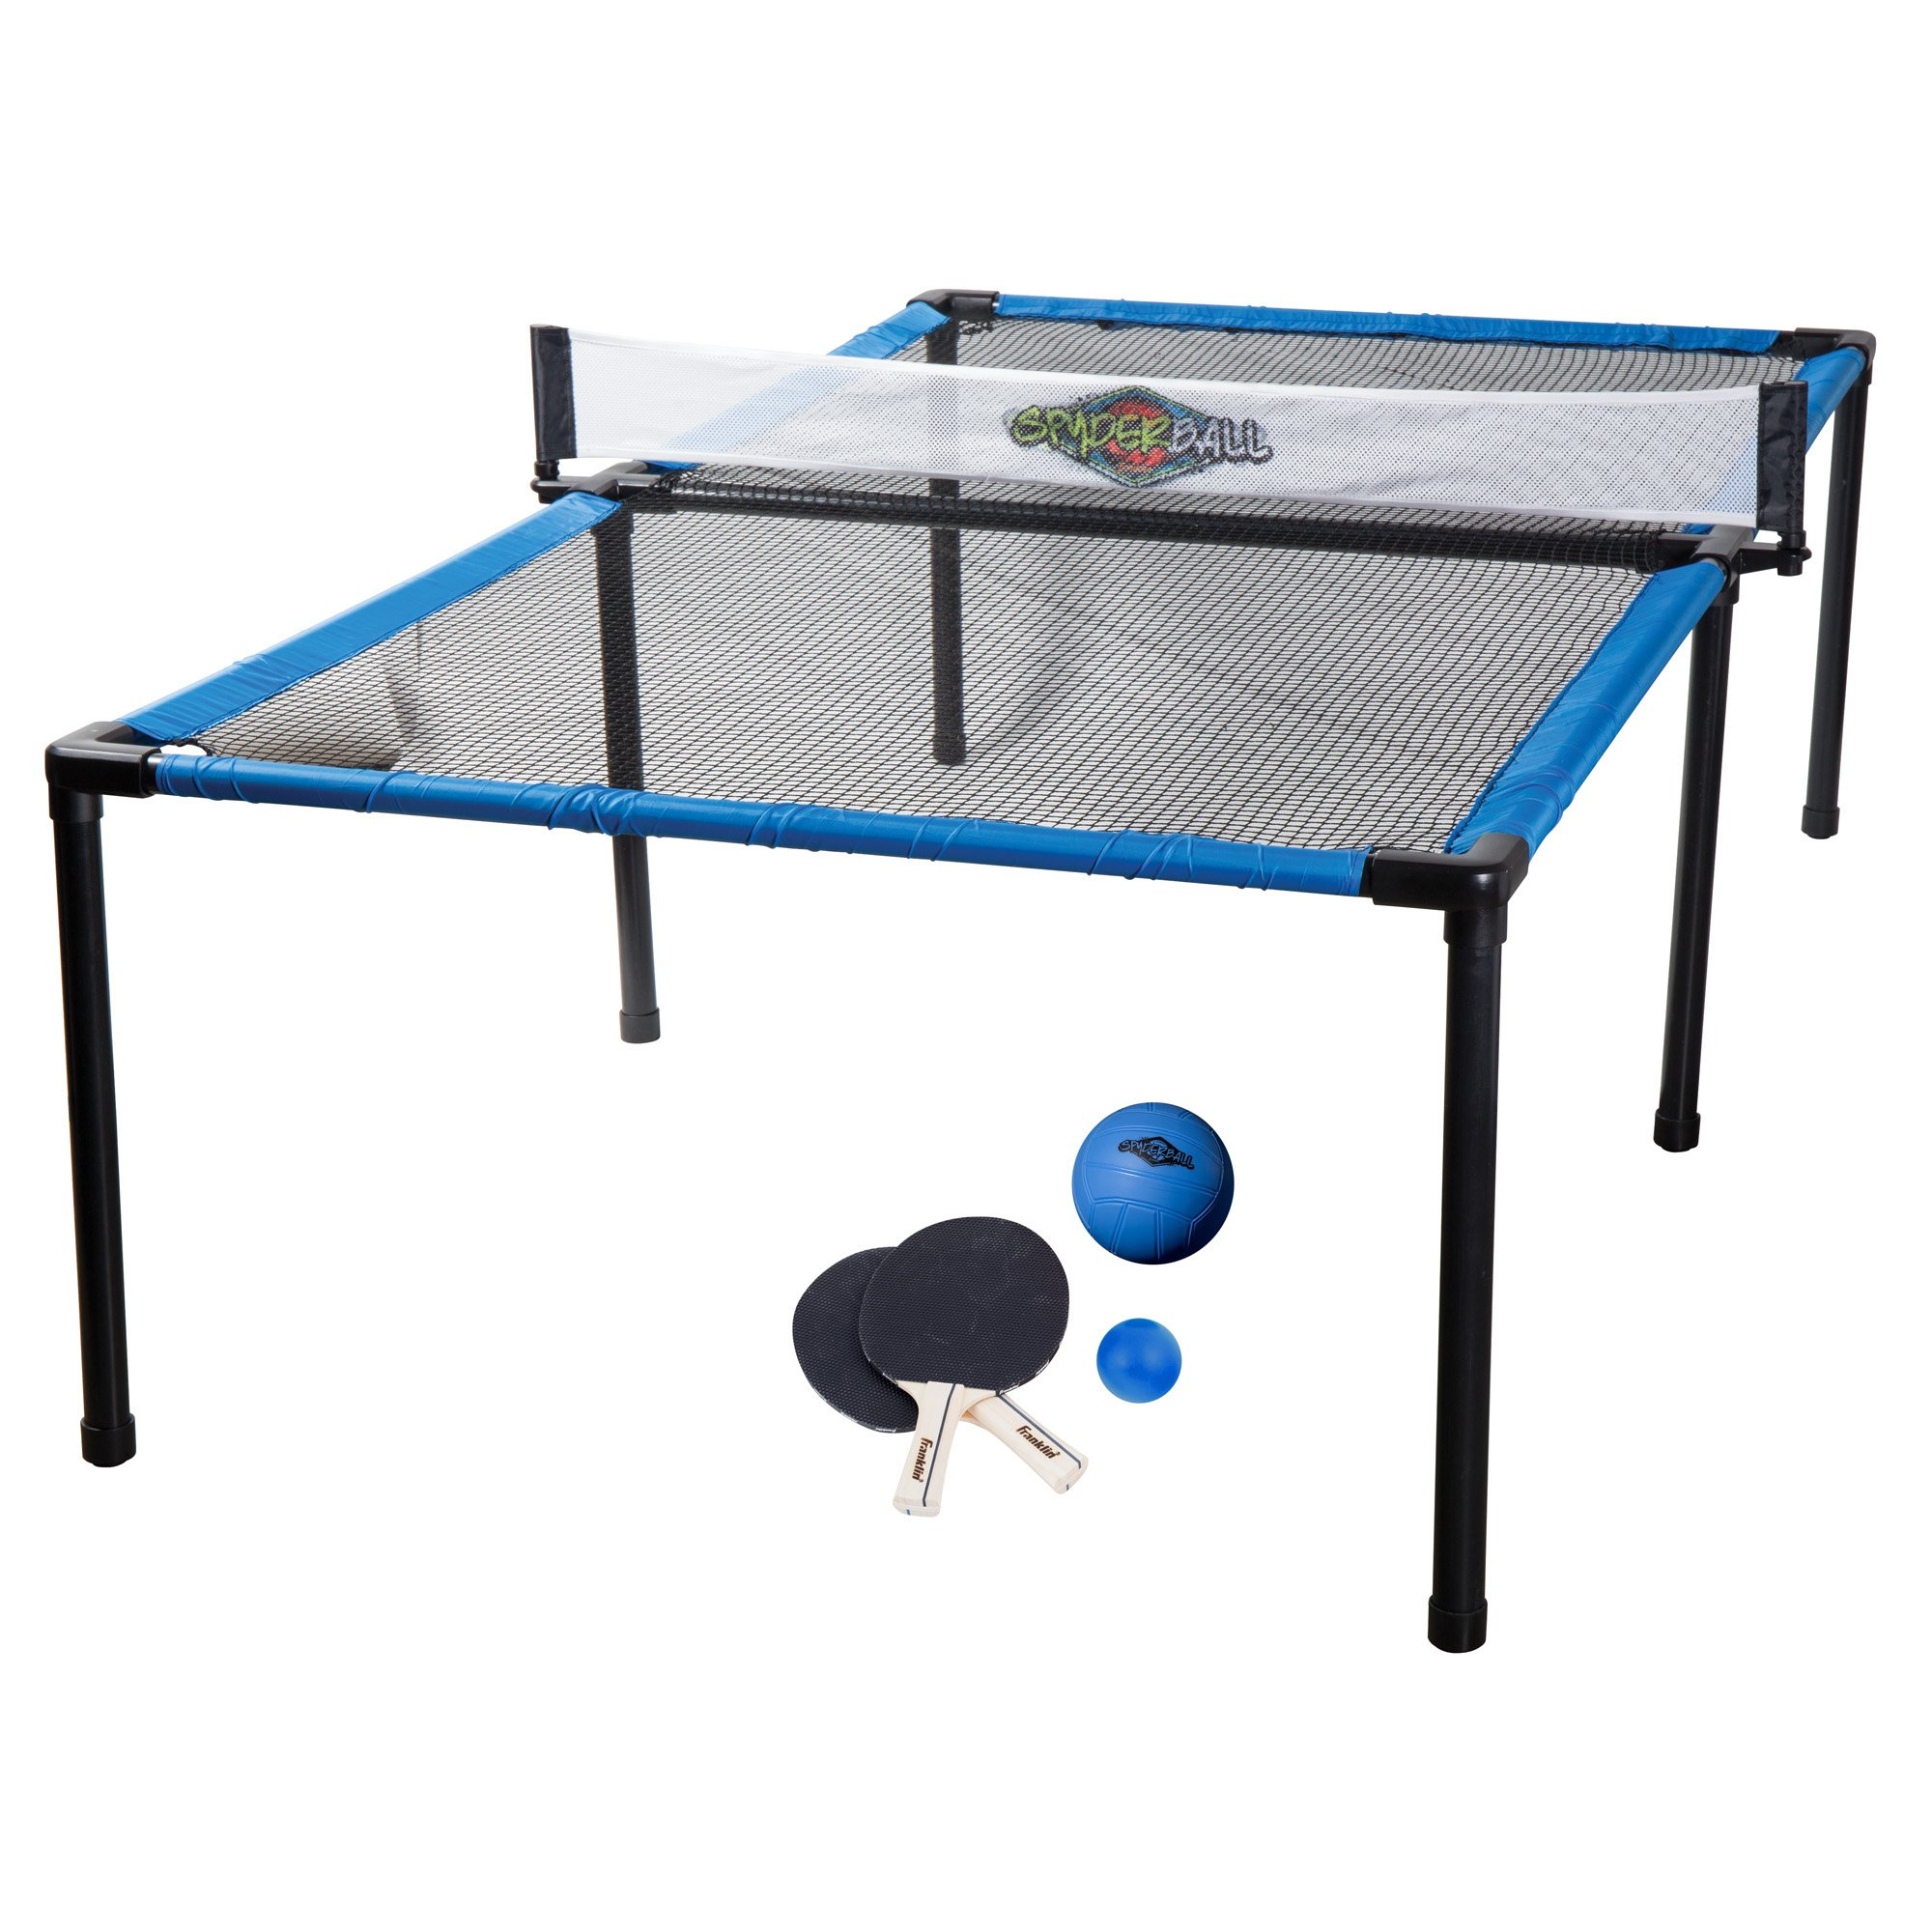 Franklin Sports Spyder Pong by Franklin Sports